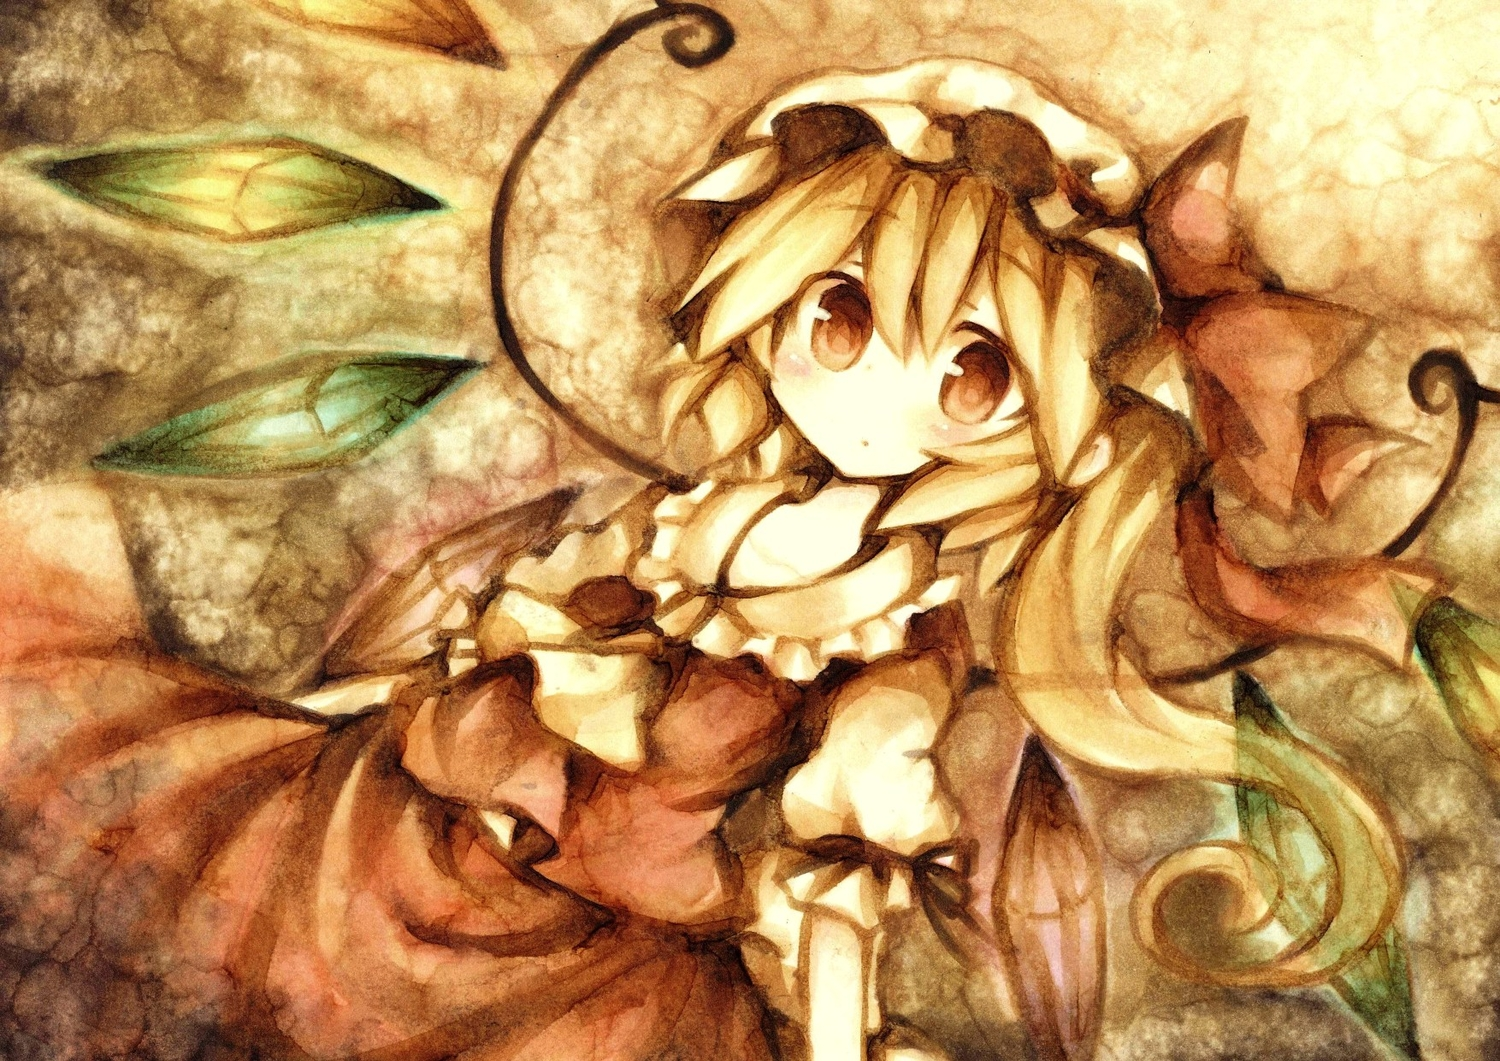 blonde_hair flandre_scarlet hat polychromatic ponytail red_eyes touhou vampire wings wiriam07